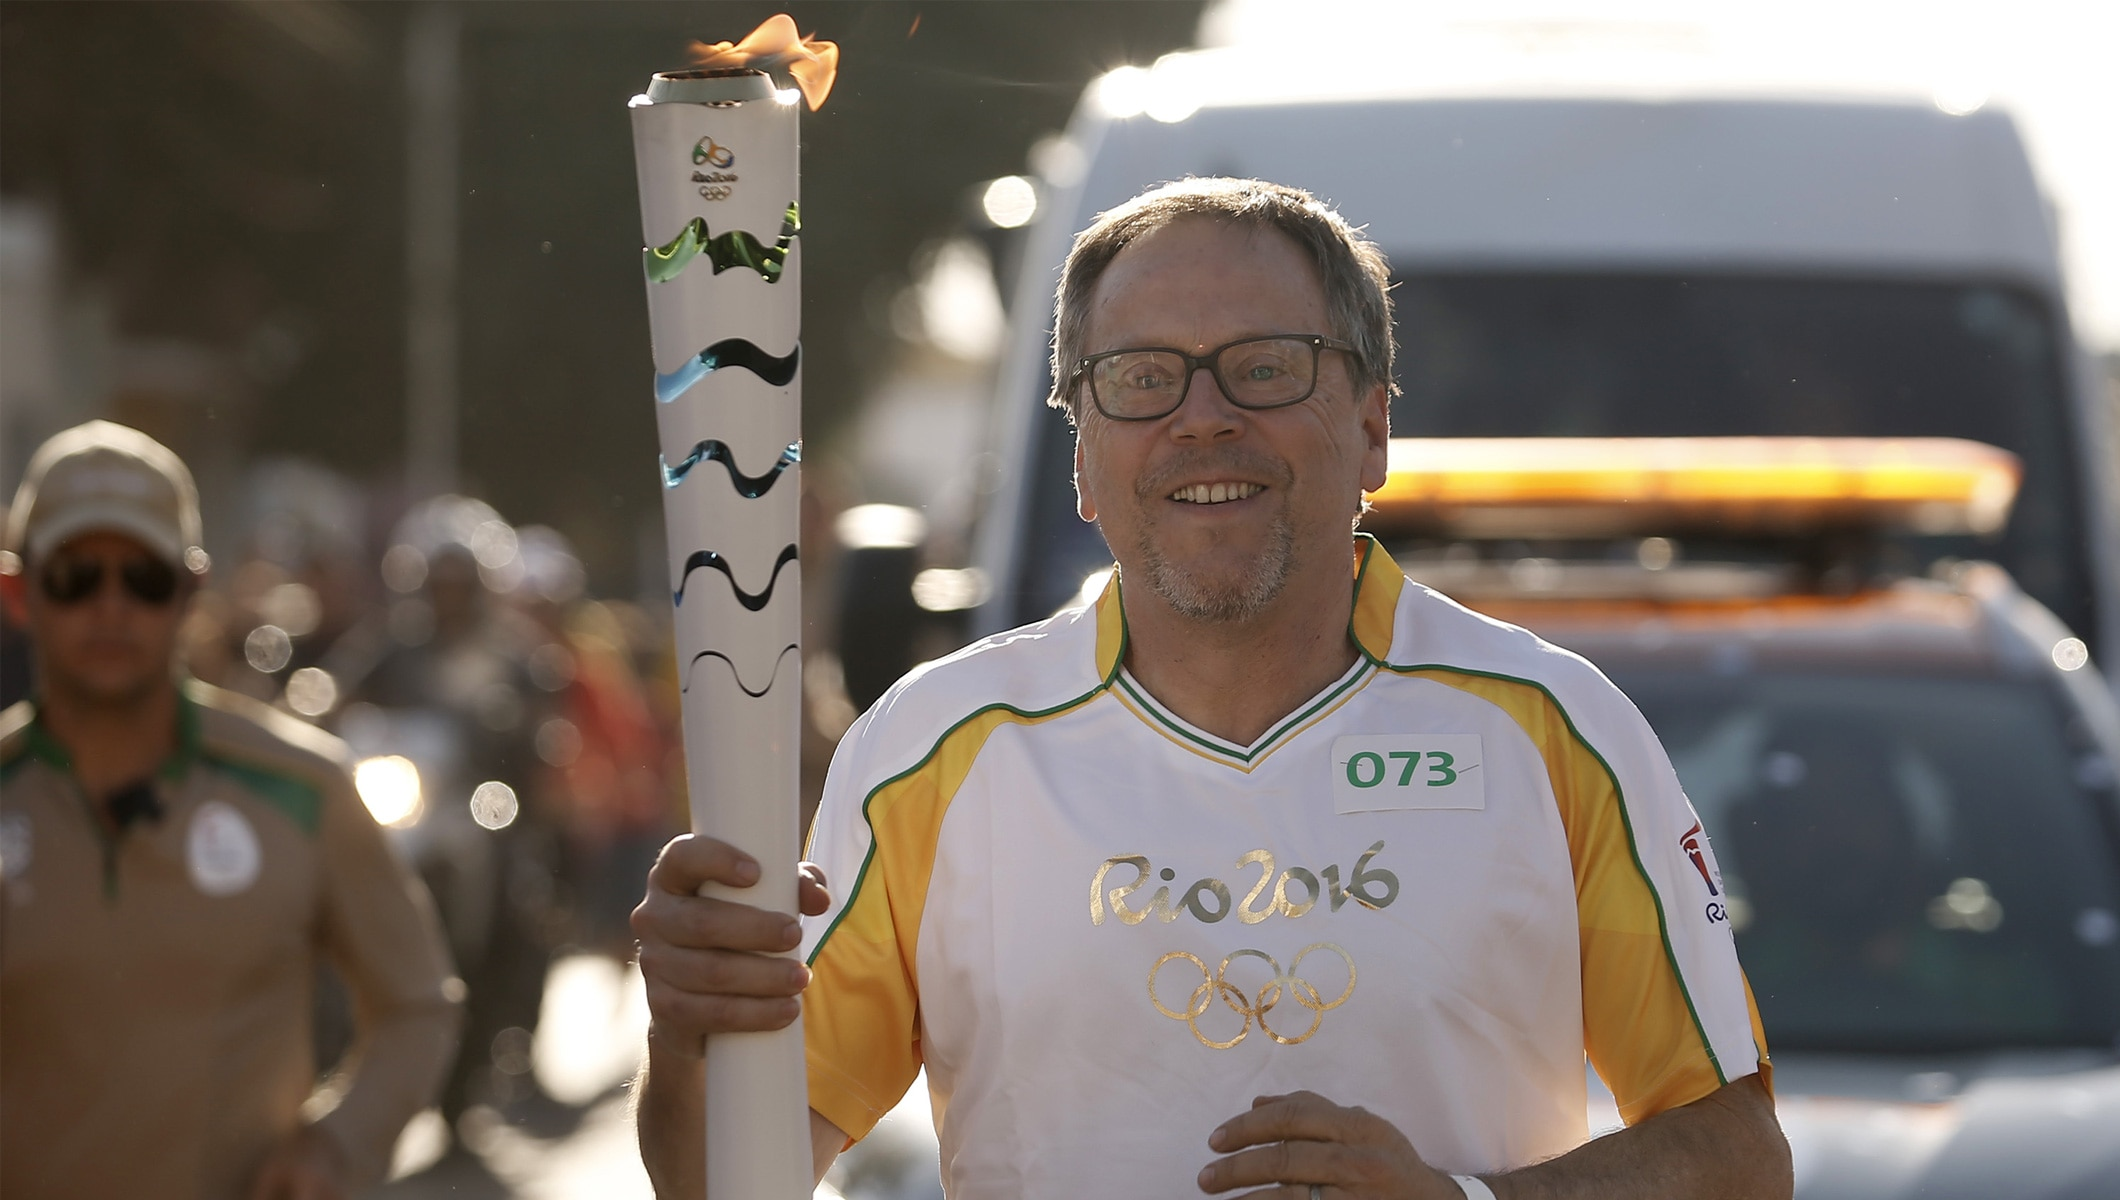 Rio 2016 Olympic Torch Relay - Day 77